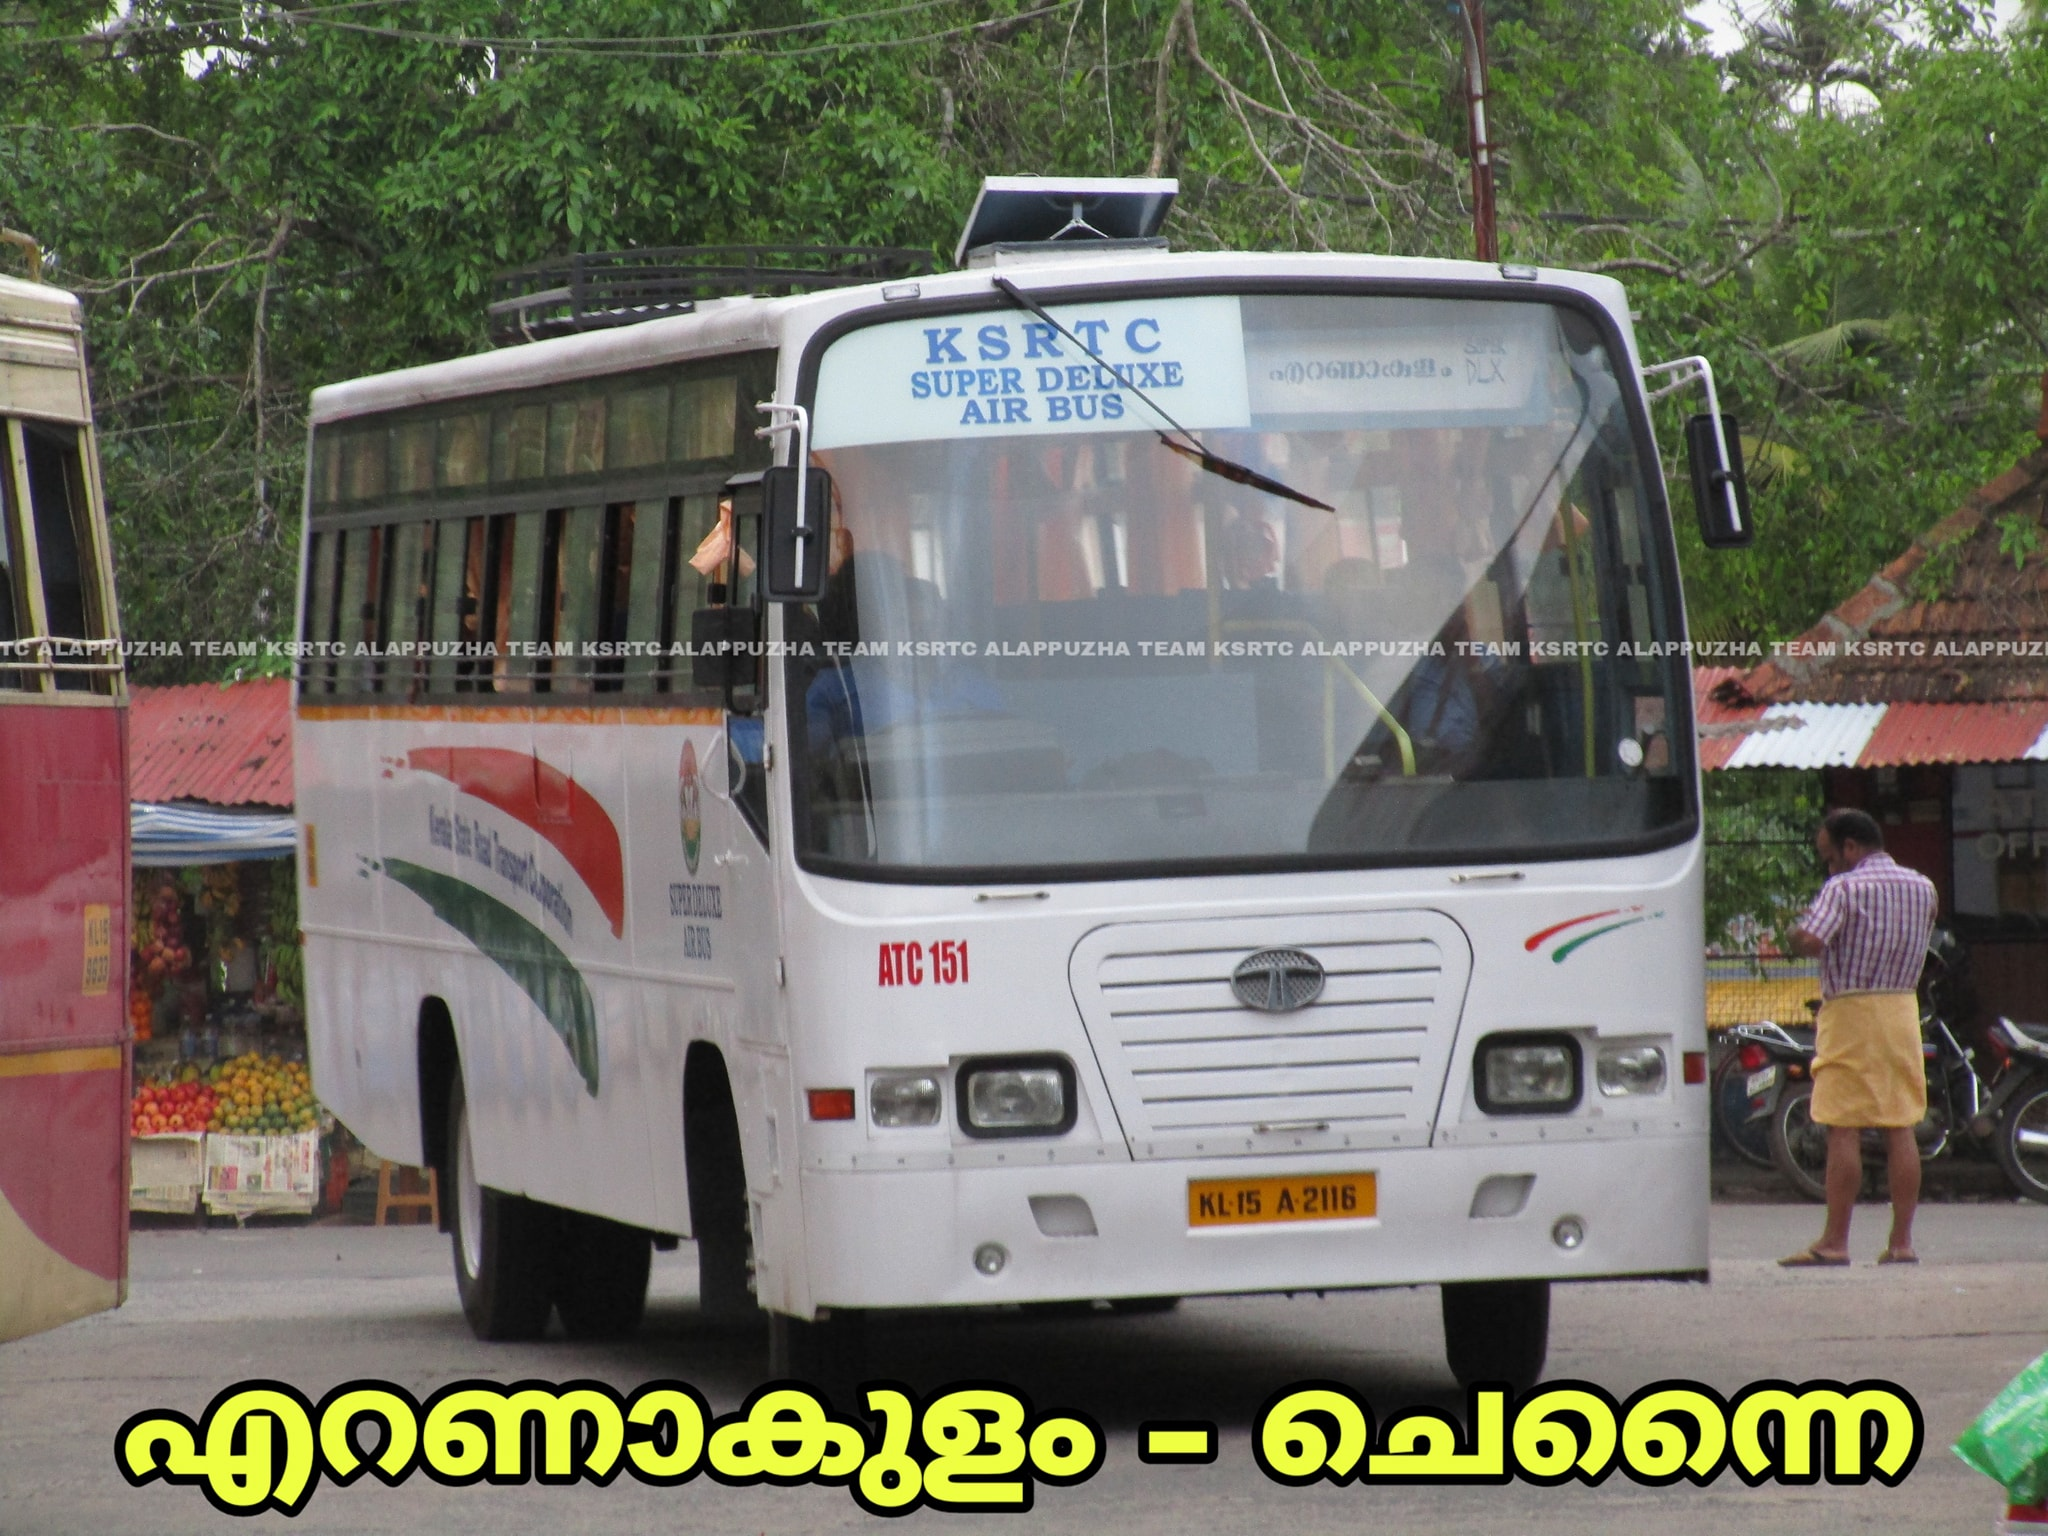 Chennai To Ernakulam KSRTC Super Deluxe Bus Service Timings COVID19 Special